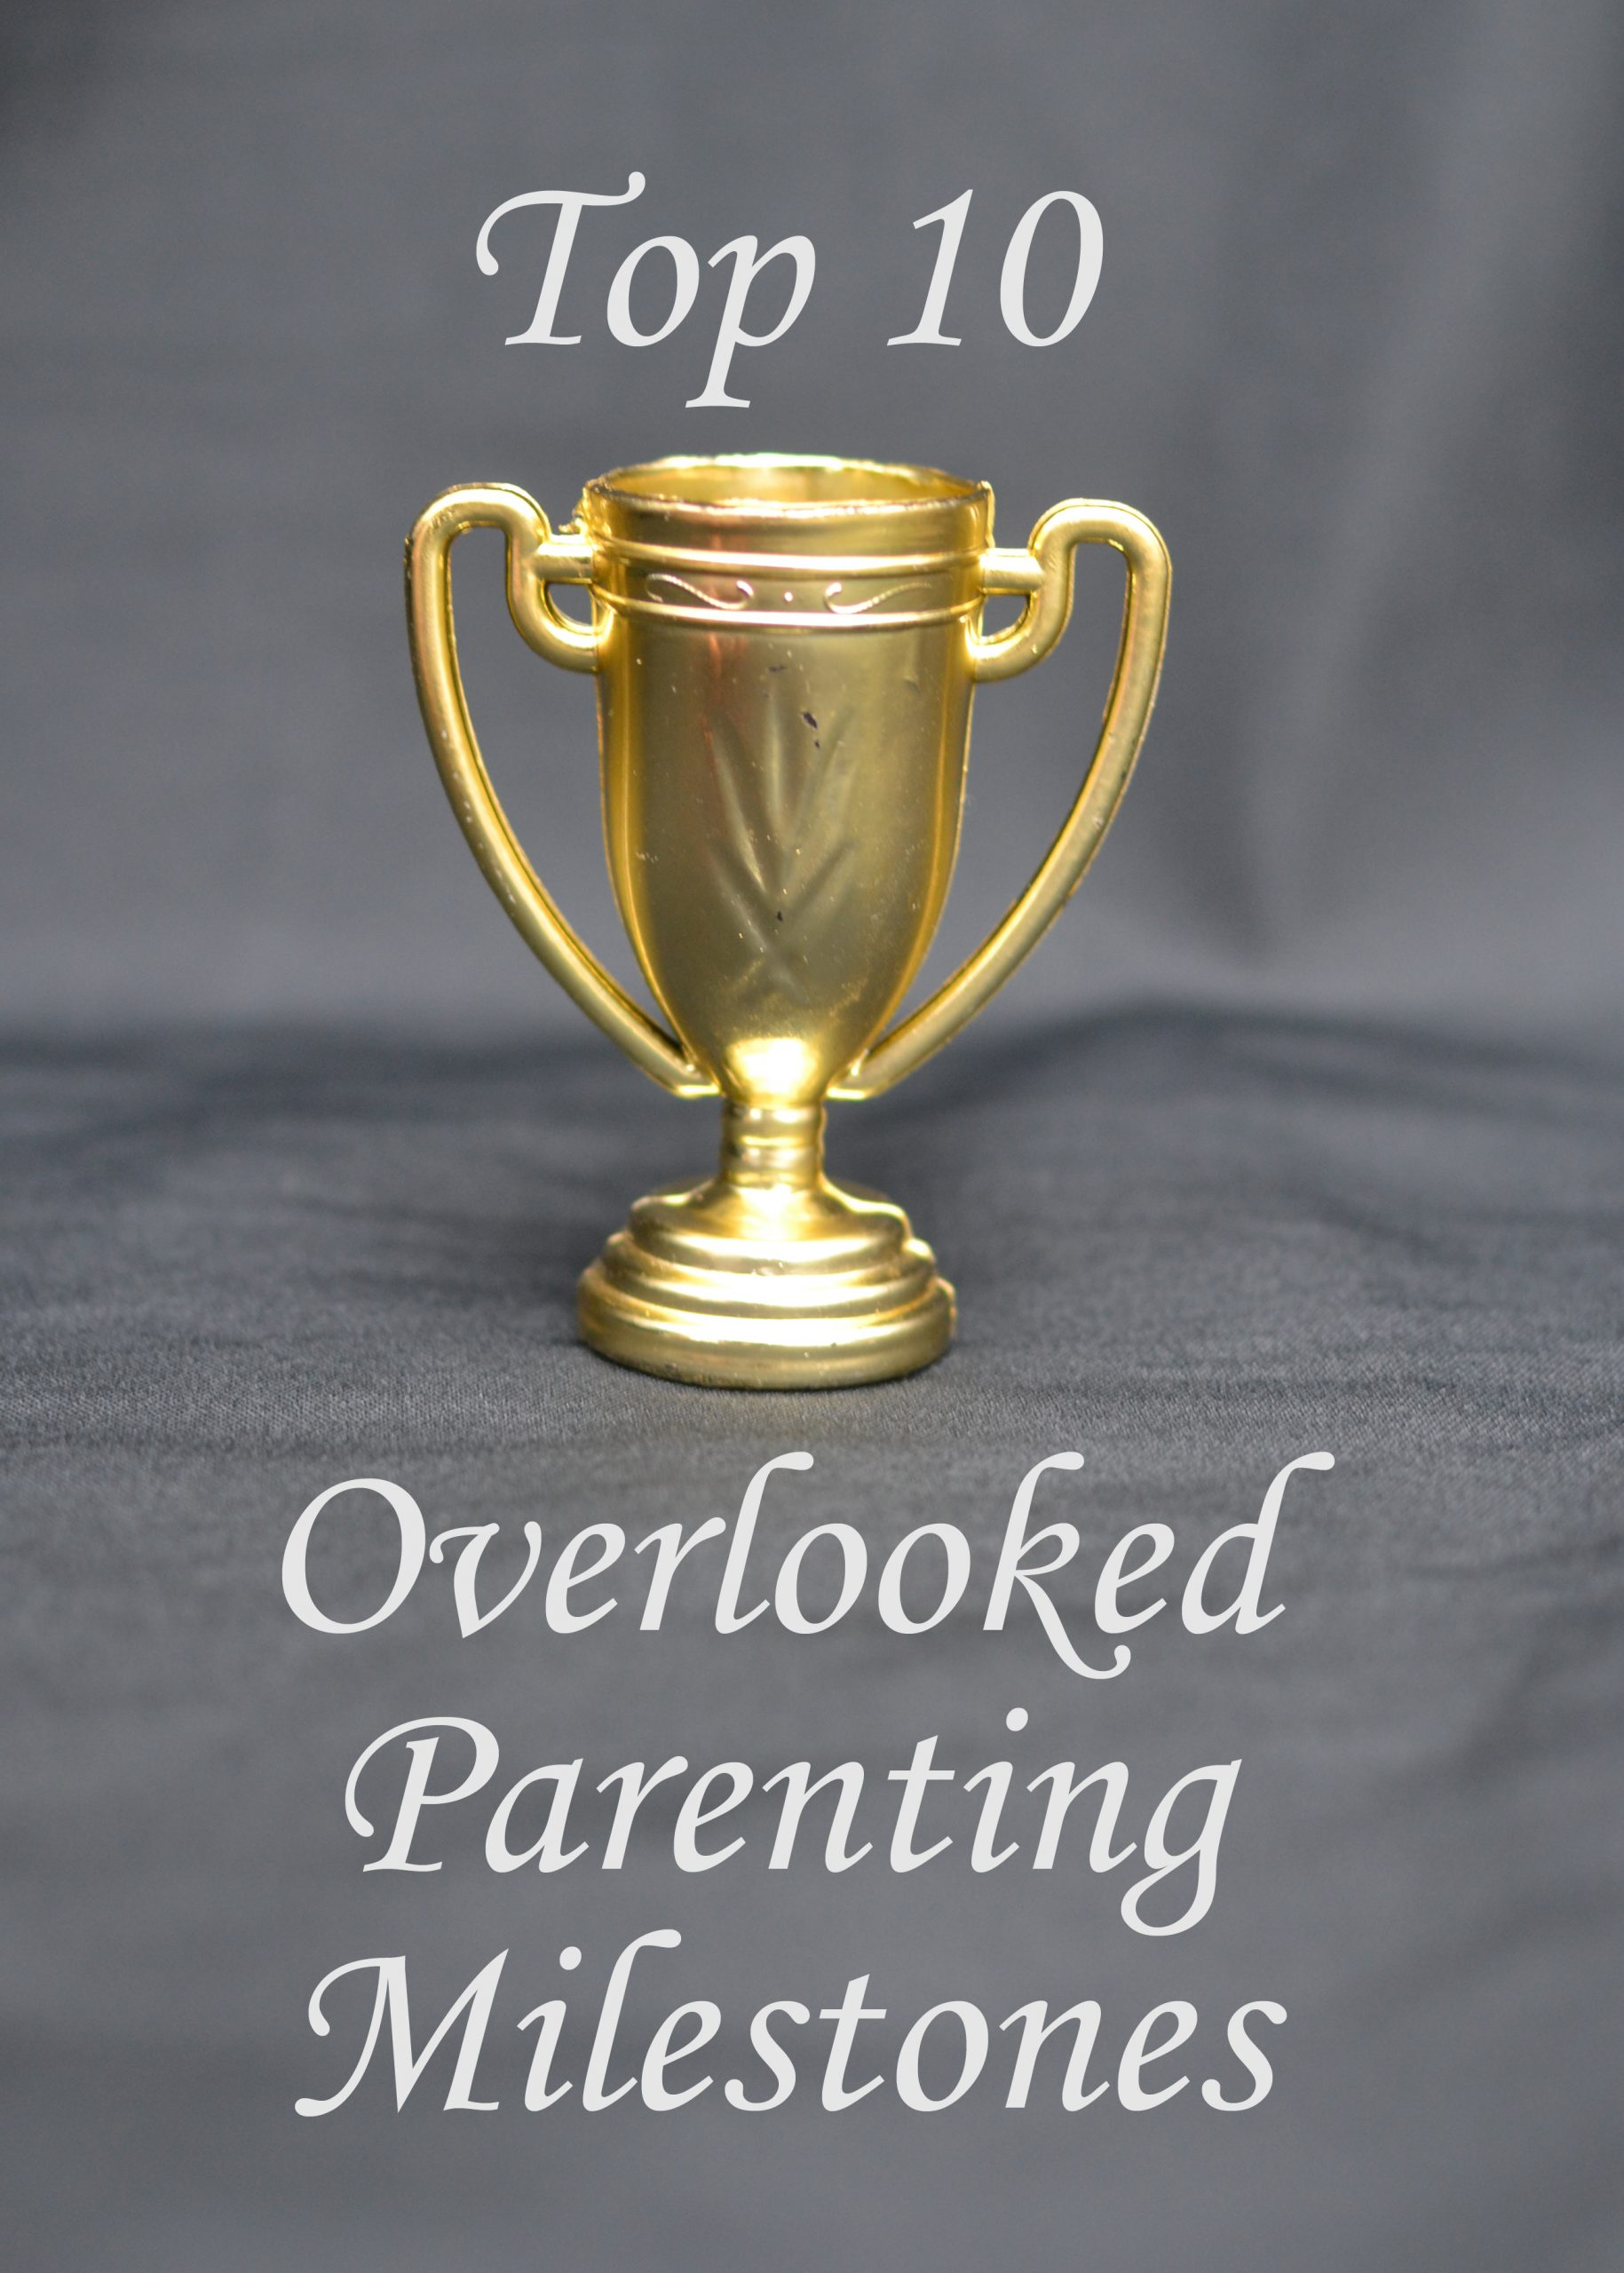 Top 10 Overlooked Parenting Milestones